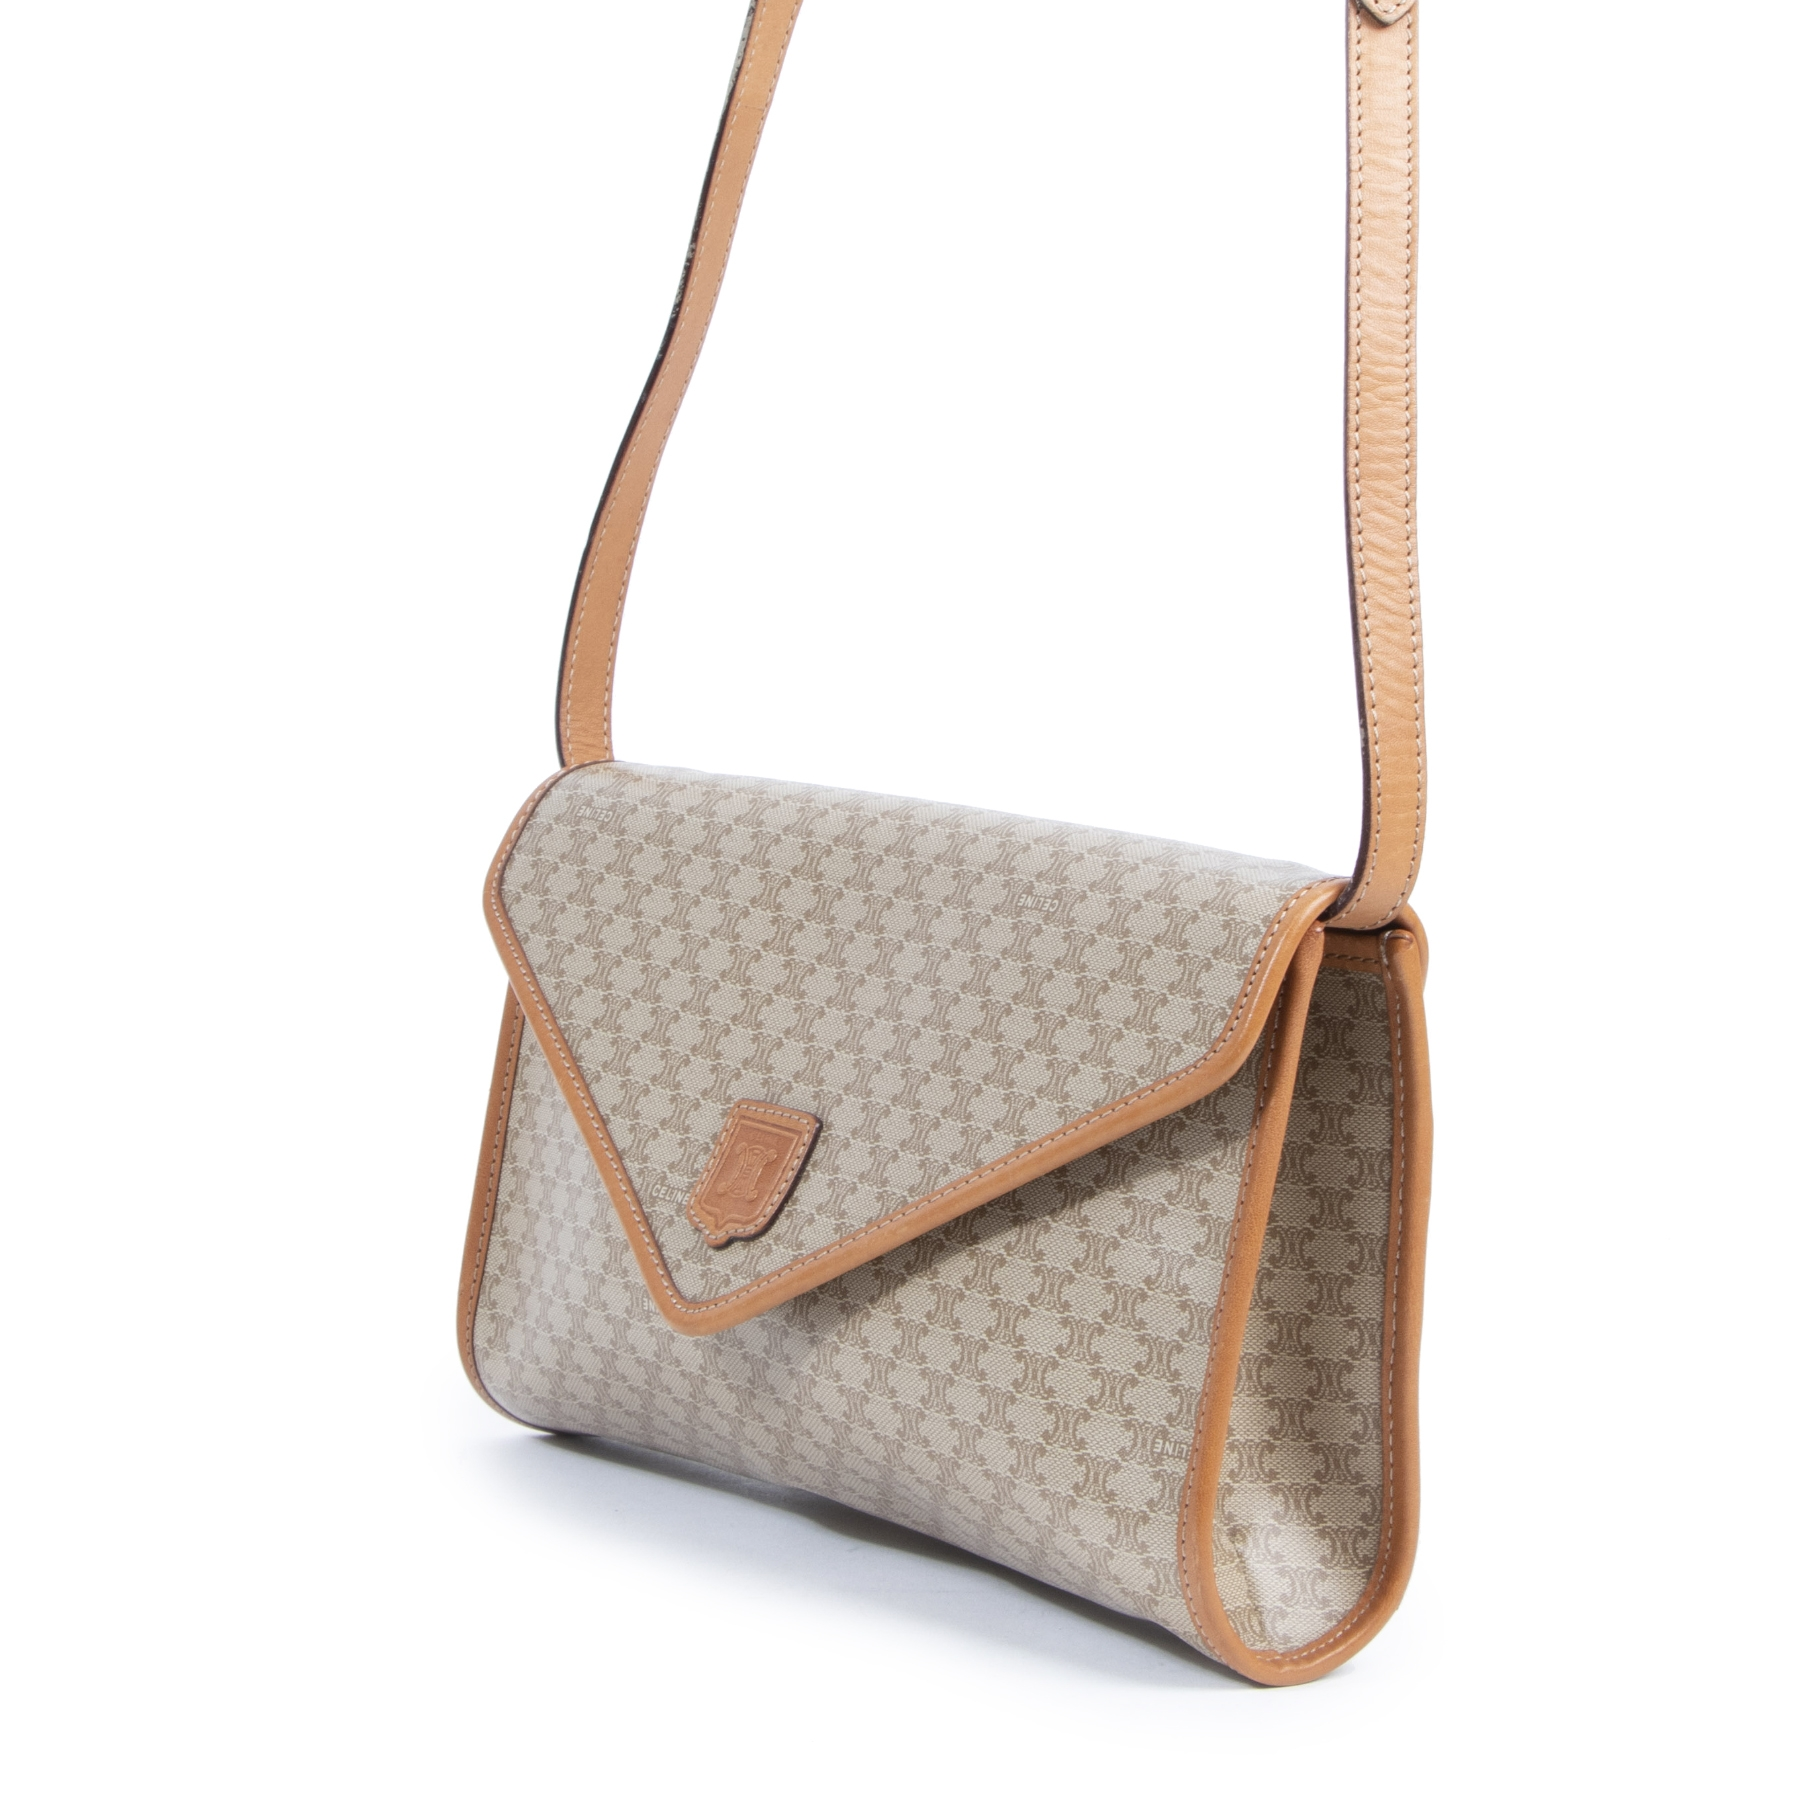 Authentic second-hand vintage Céline Beige Macadam Crossbody Bag buy online webshop LabelLOV